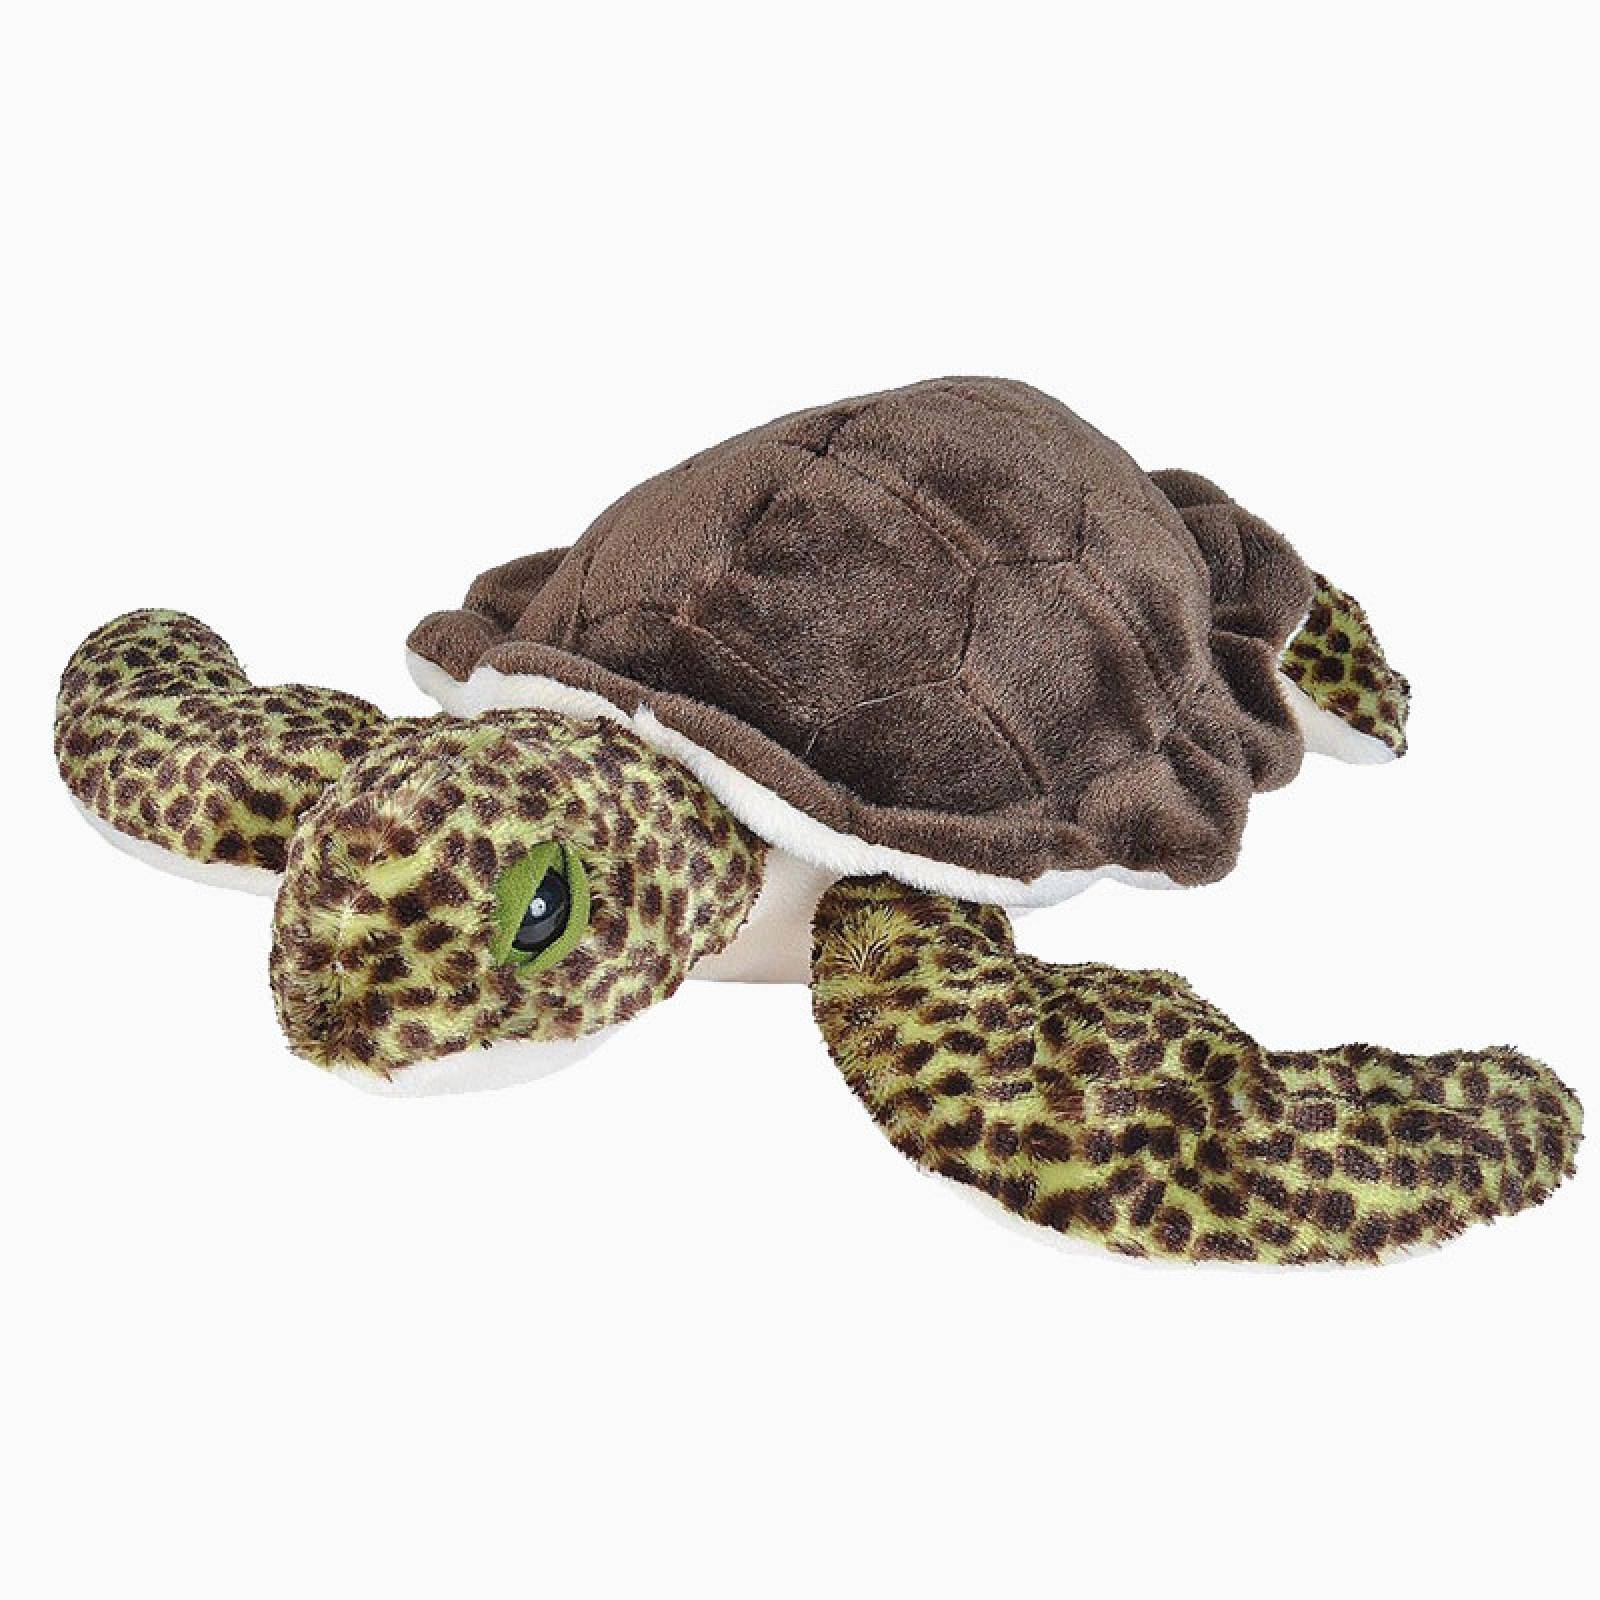 Green Sea Turtle - Soft Toy